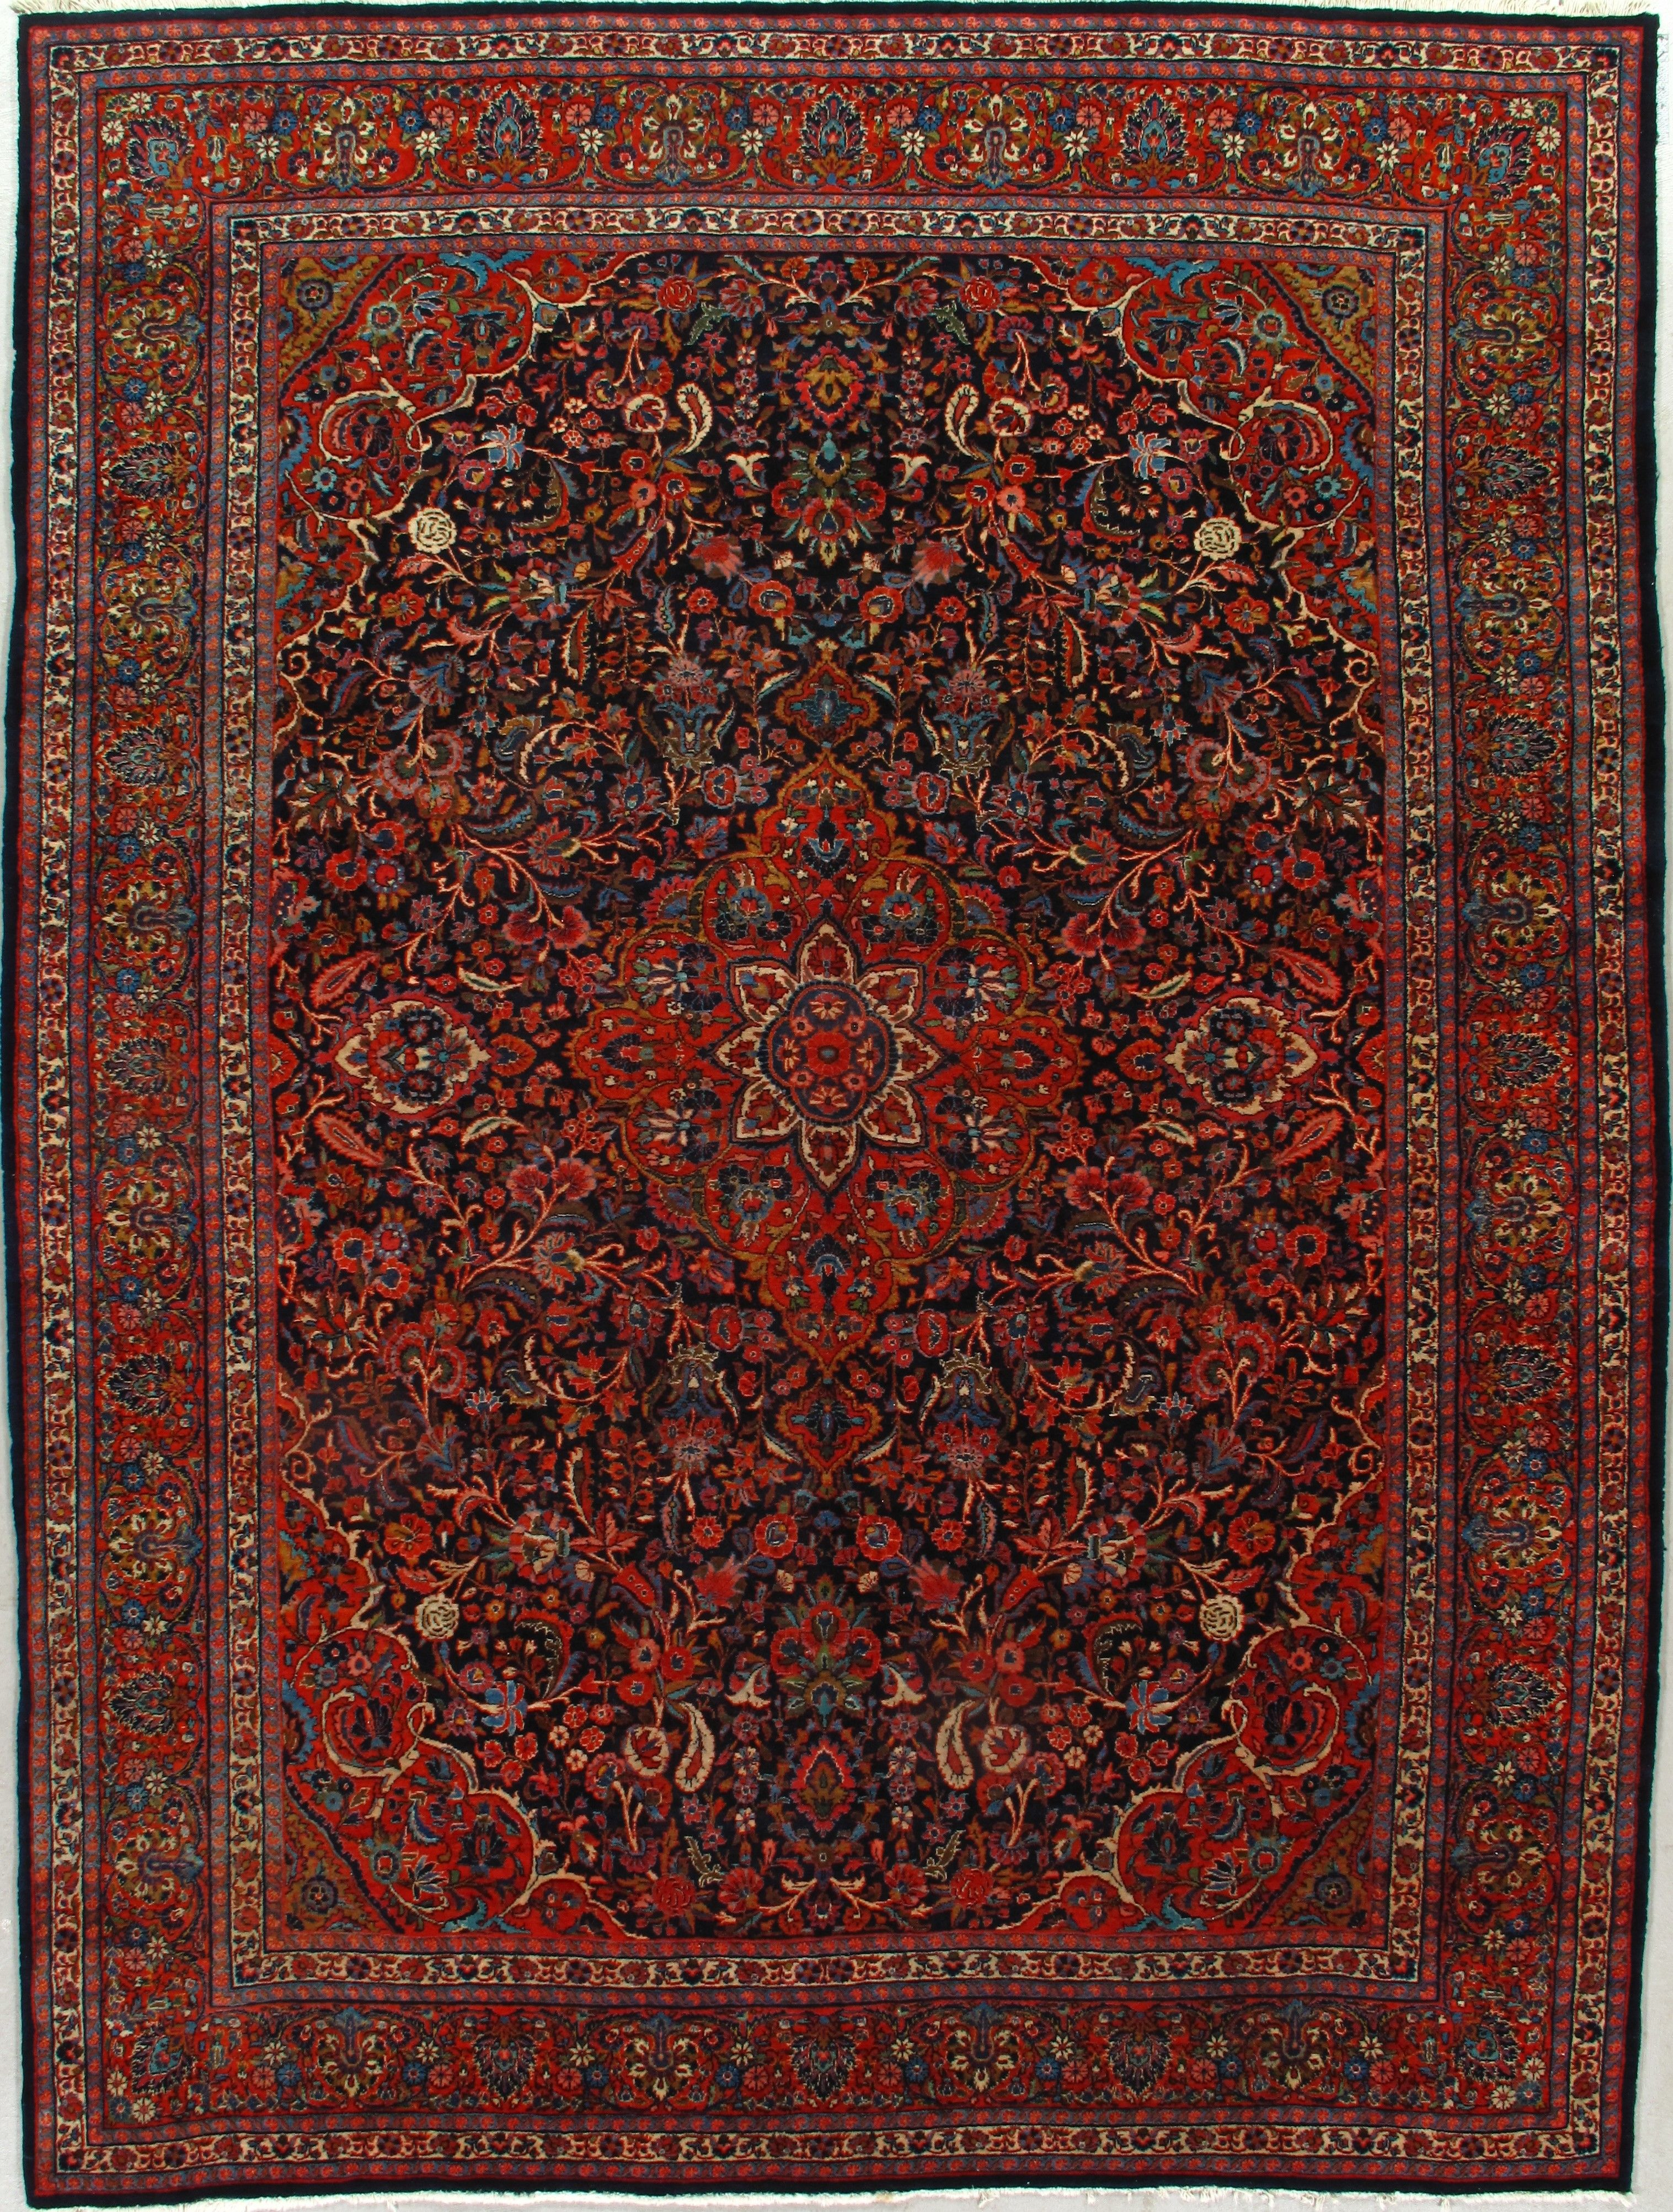 vintage tent turkmen products image cover rug next previous